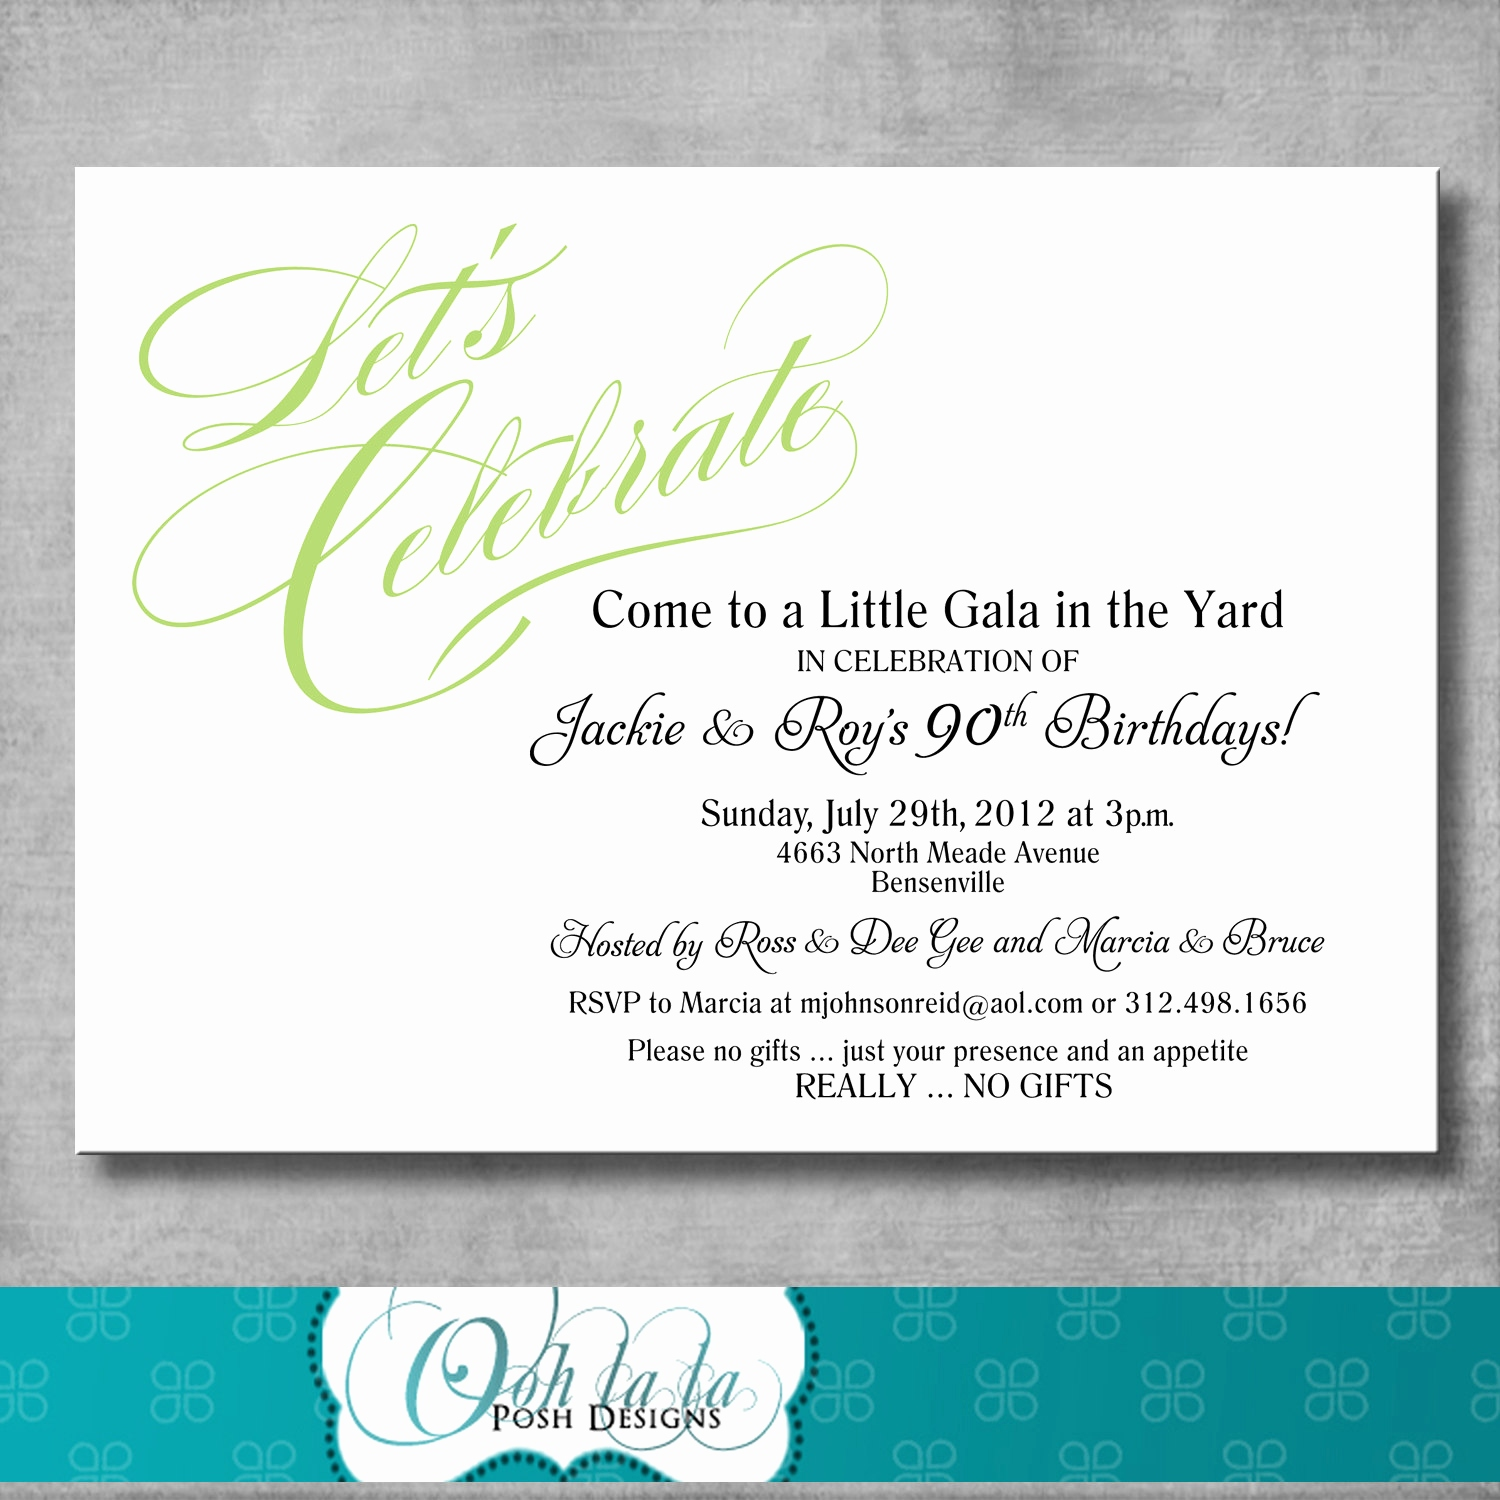 birthday card formal ; 5th-birthday-card-messages-new-design-sample-birthday-invitation-wording-as-well-as-formal-of-5th-birthday-card-messages